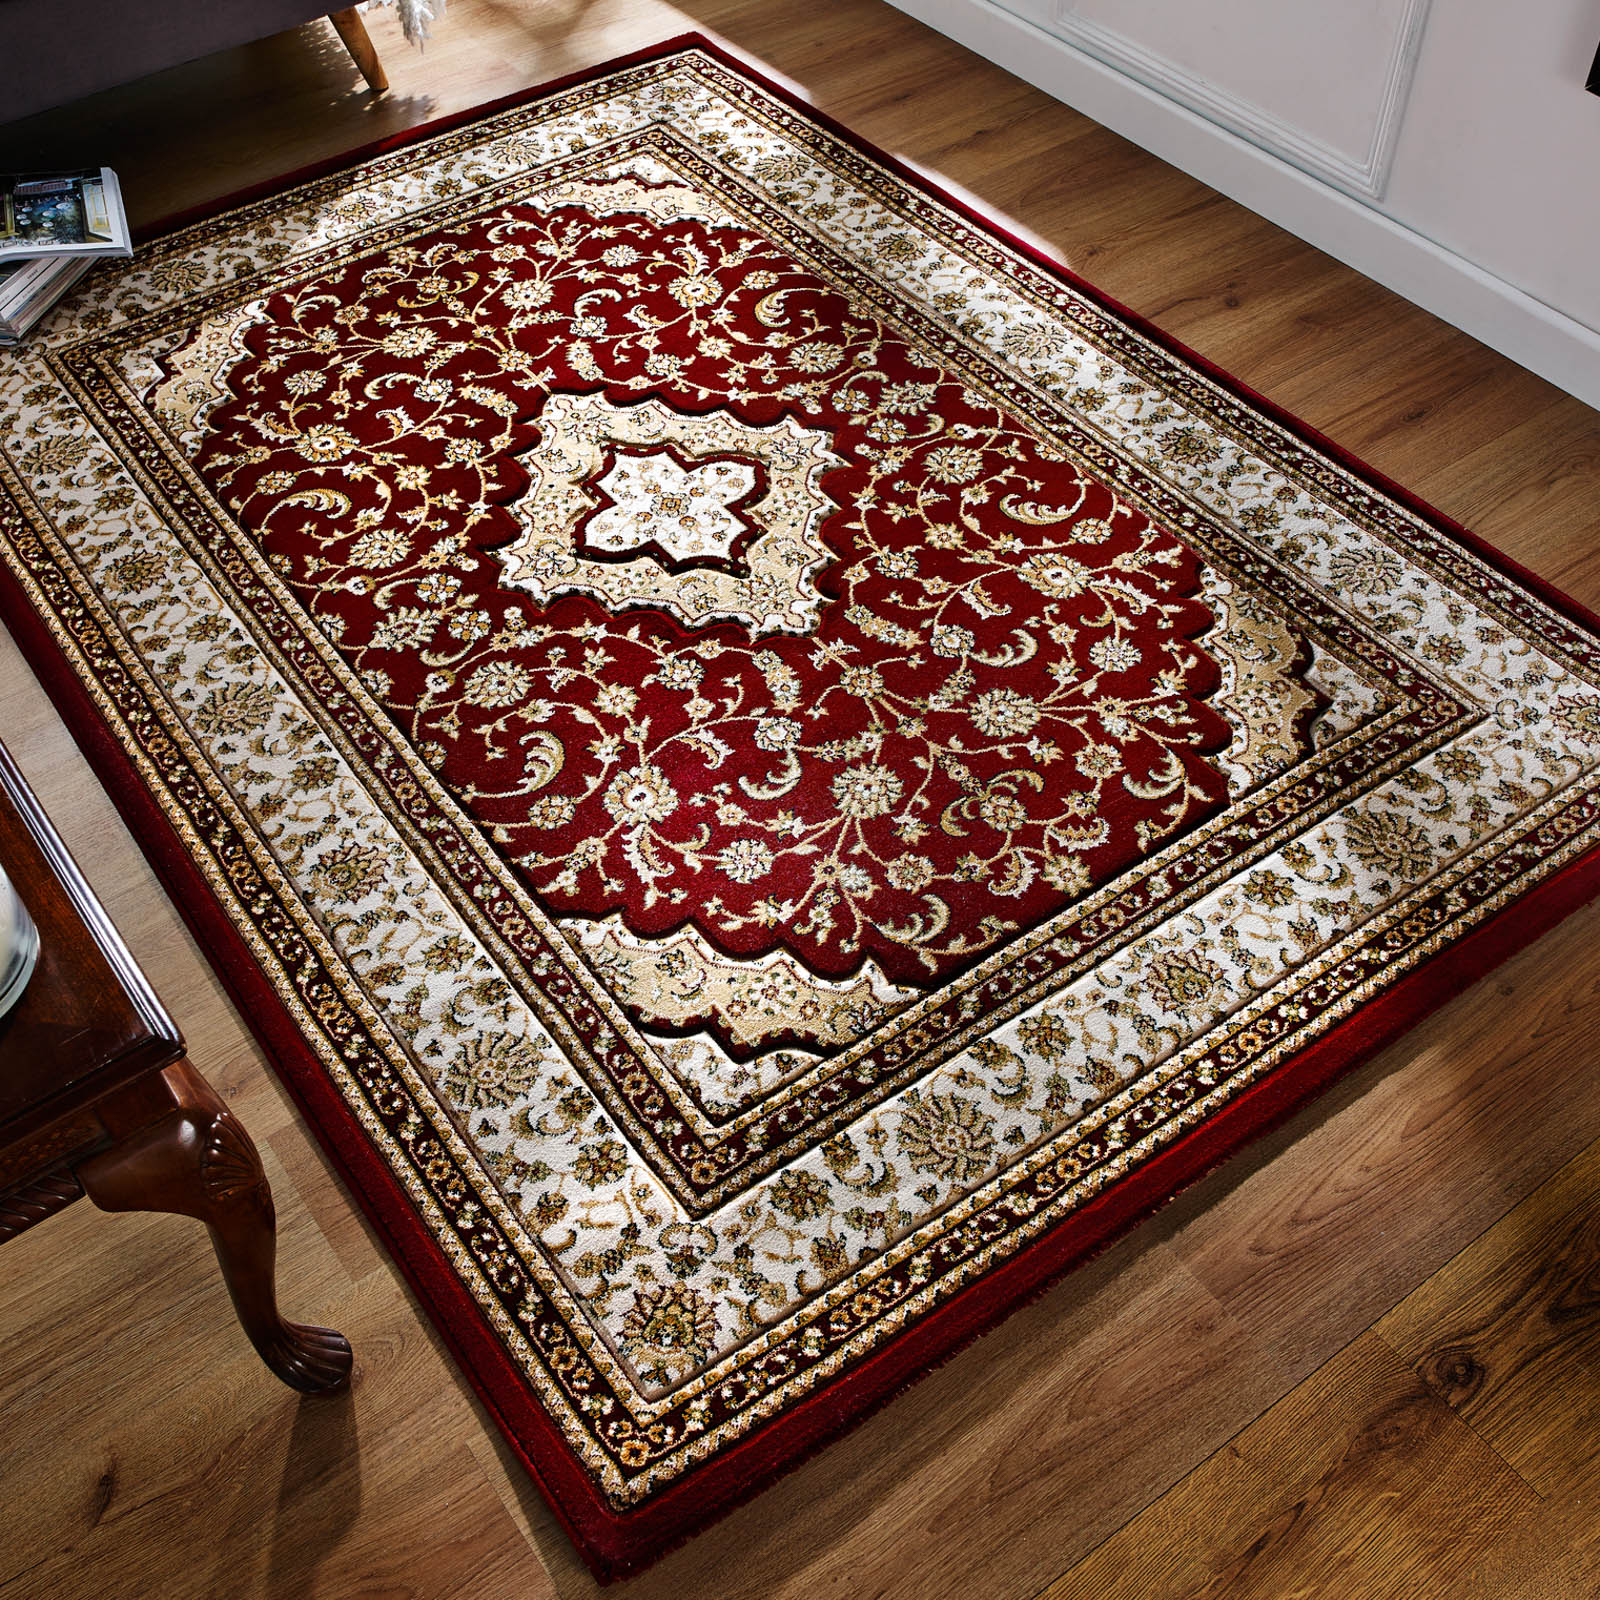 Ottoman Temple Rugs